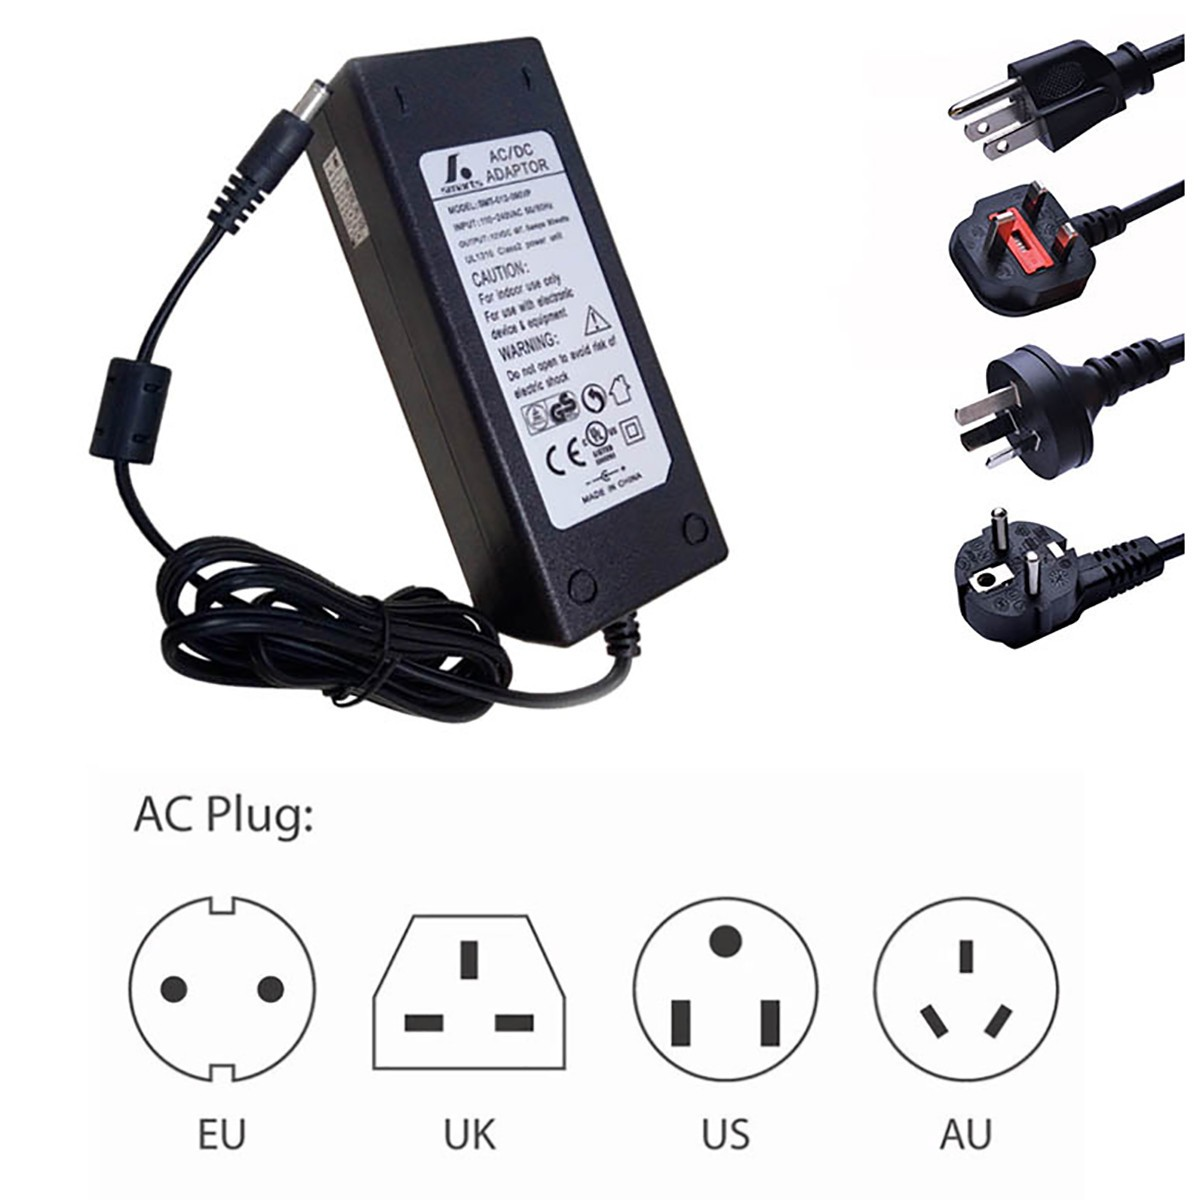 6V 10Amp 60W Indoor AC-DC Wall Plug in Switching LED Power Supply with DC 5.5/2.1 Male Barrel Connector